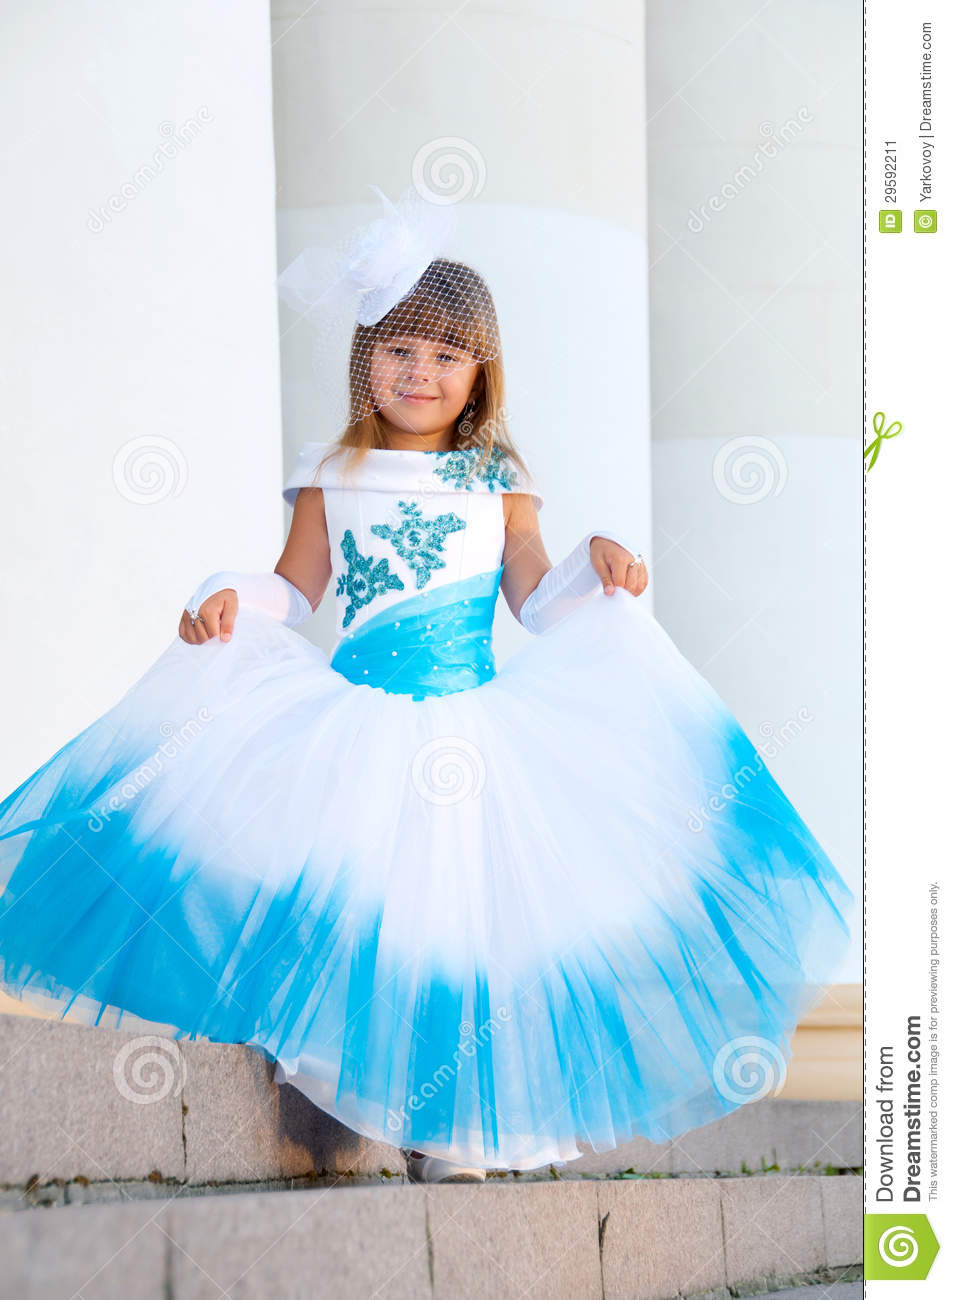 Little Bride. A Girl In A Lush White And Blue Wedding Dress Stock ...